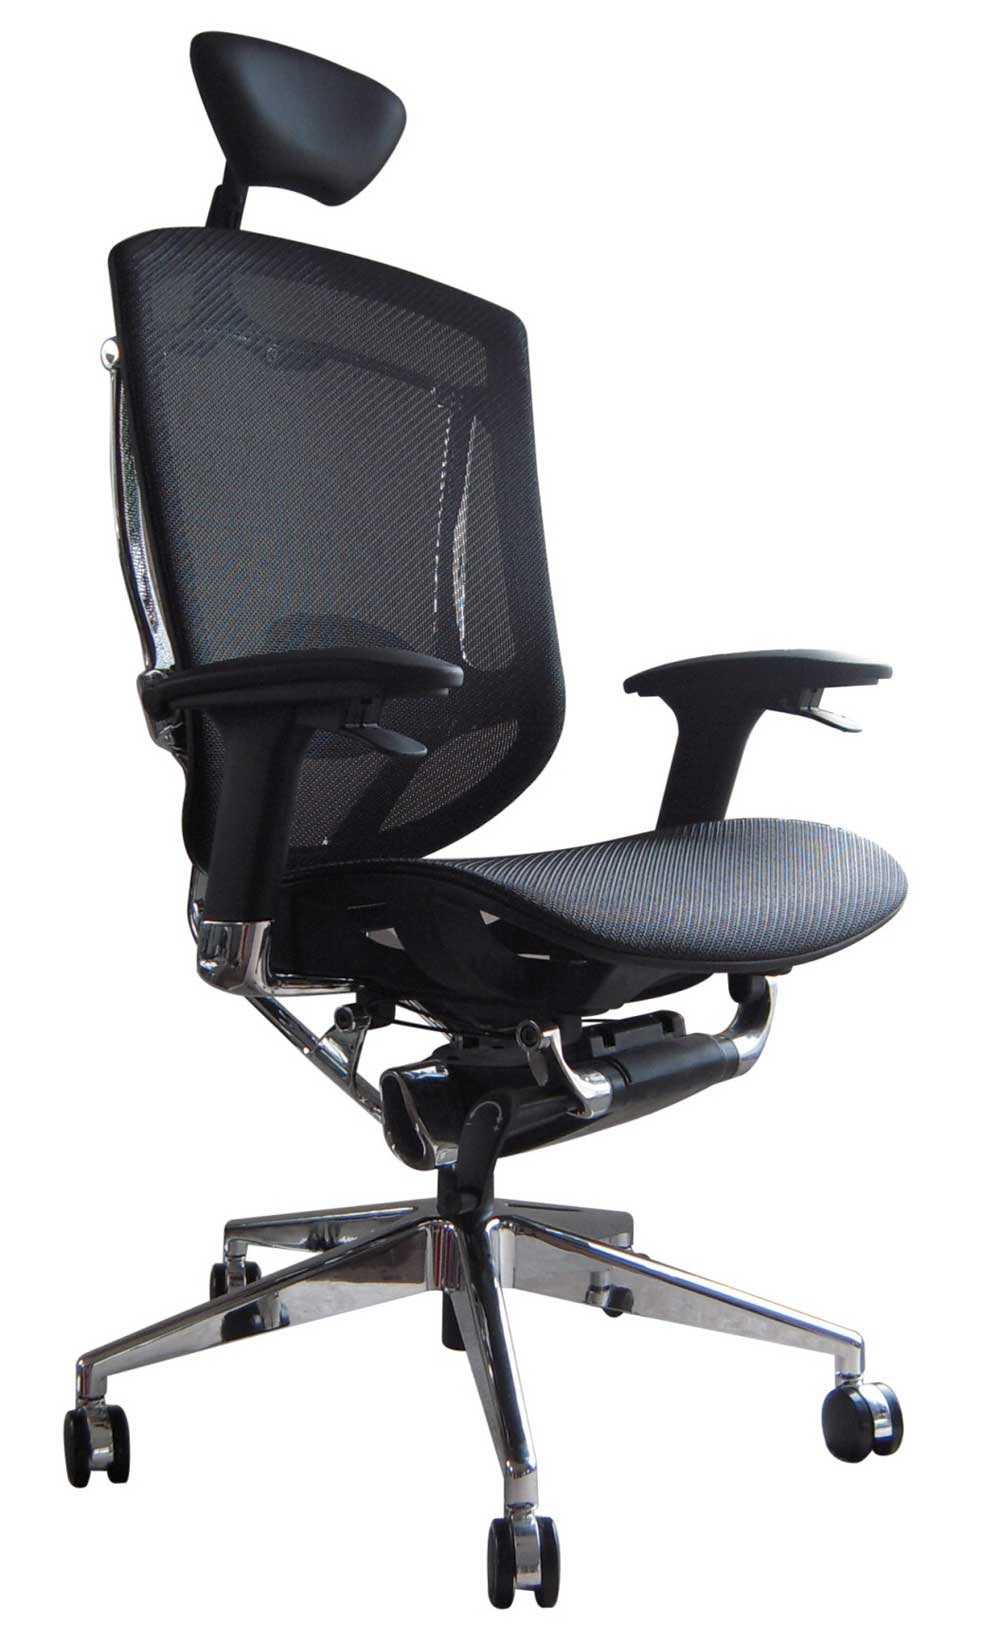 Ergonomic Computer Chair Features | Office Furniture